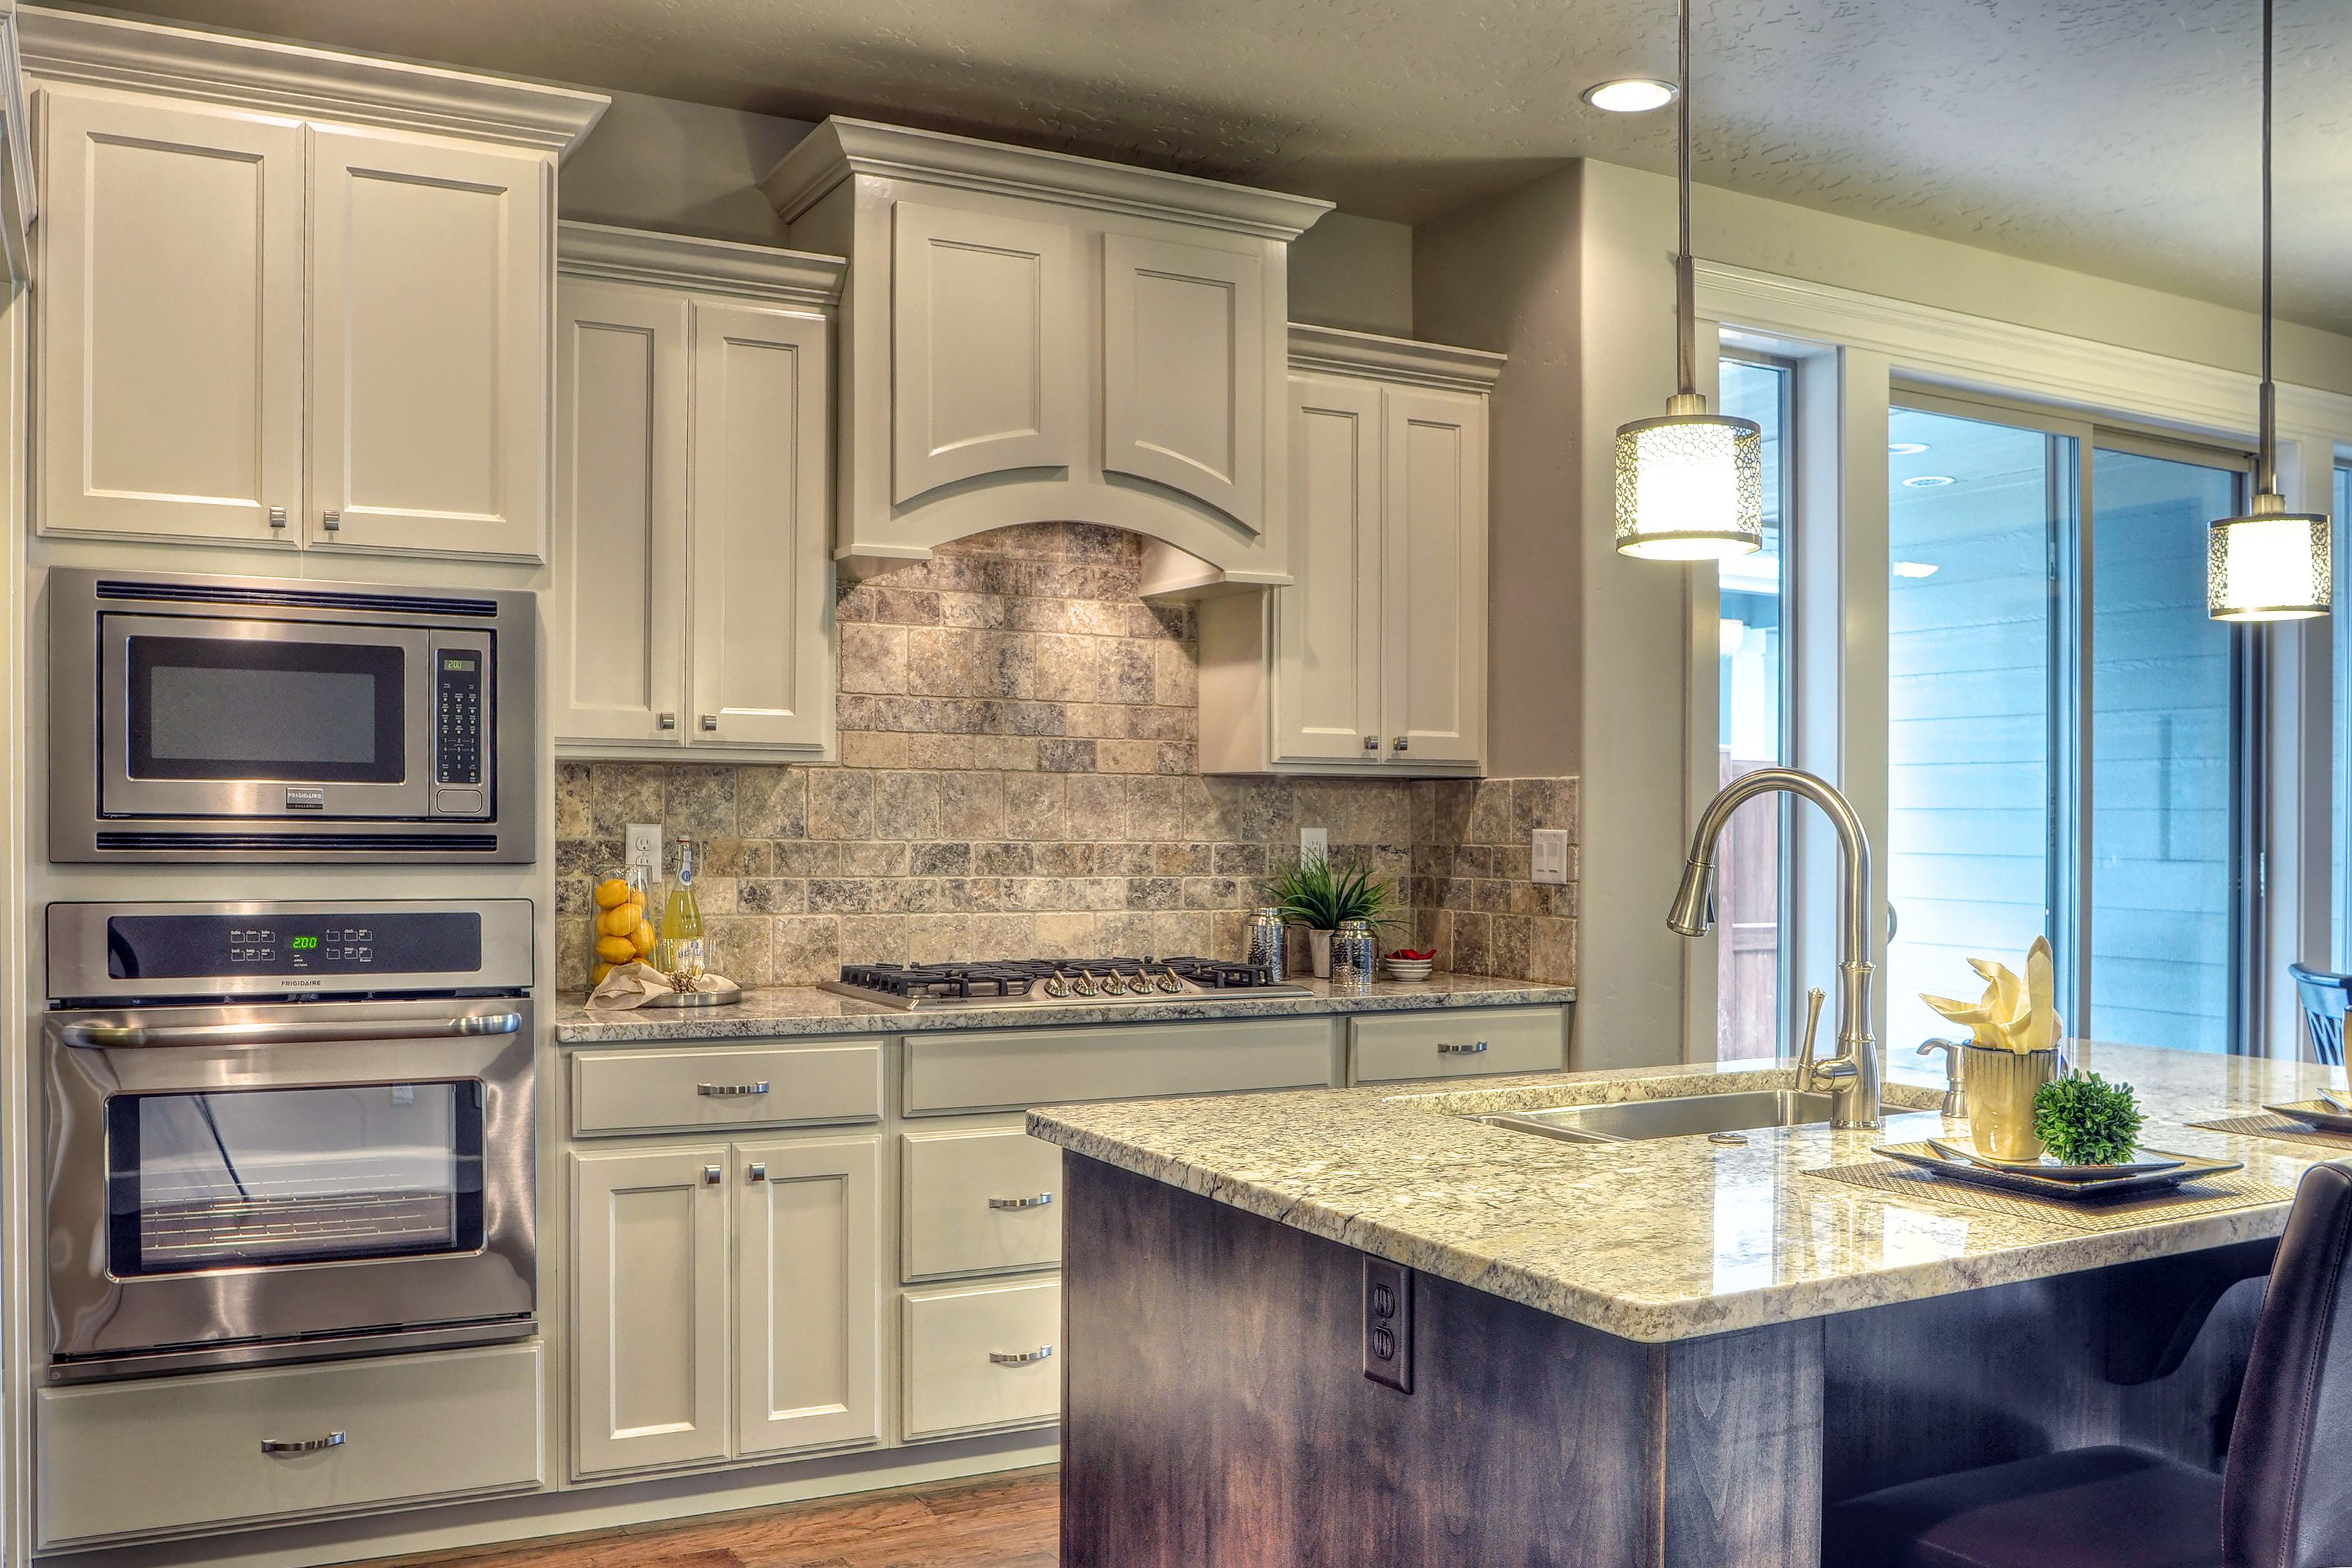 Sherwin-williams Countertop Paint Sherwin Williams Snowbound Painted Cabinets Make The Kitchen Feel